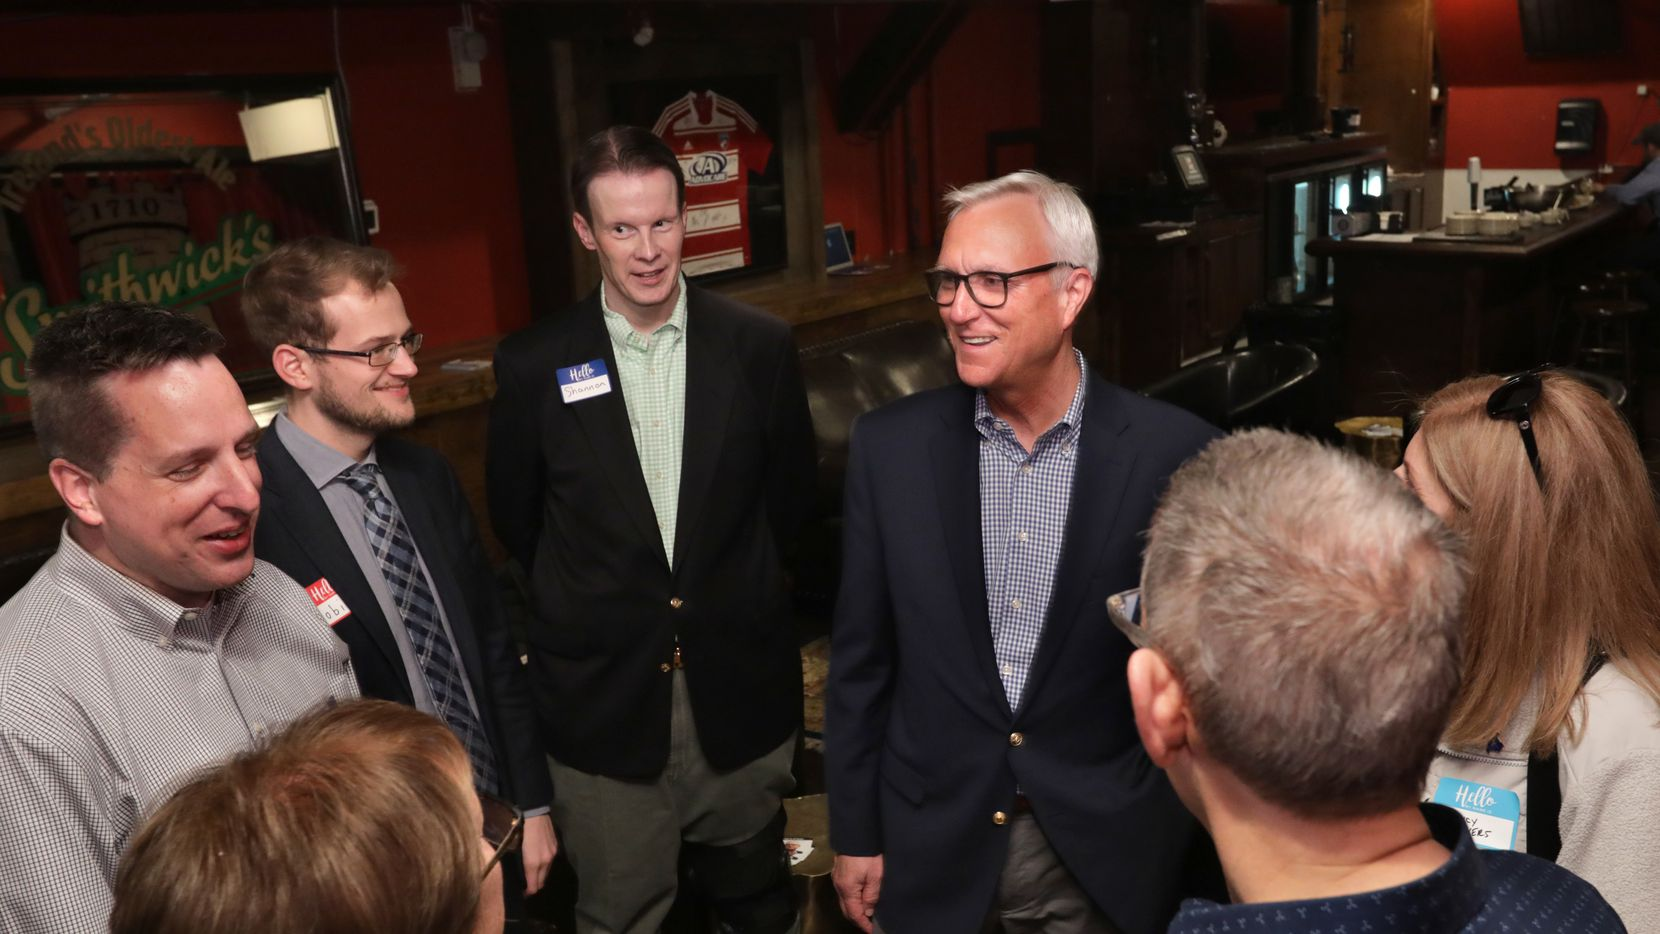 Chris Bell, center, talks to community members during a senate campaign event at The British Lion in Frisco, TX, on Nov. 16, 2019. (Jason Janik/Special Contributor)